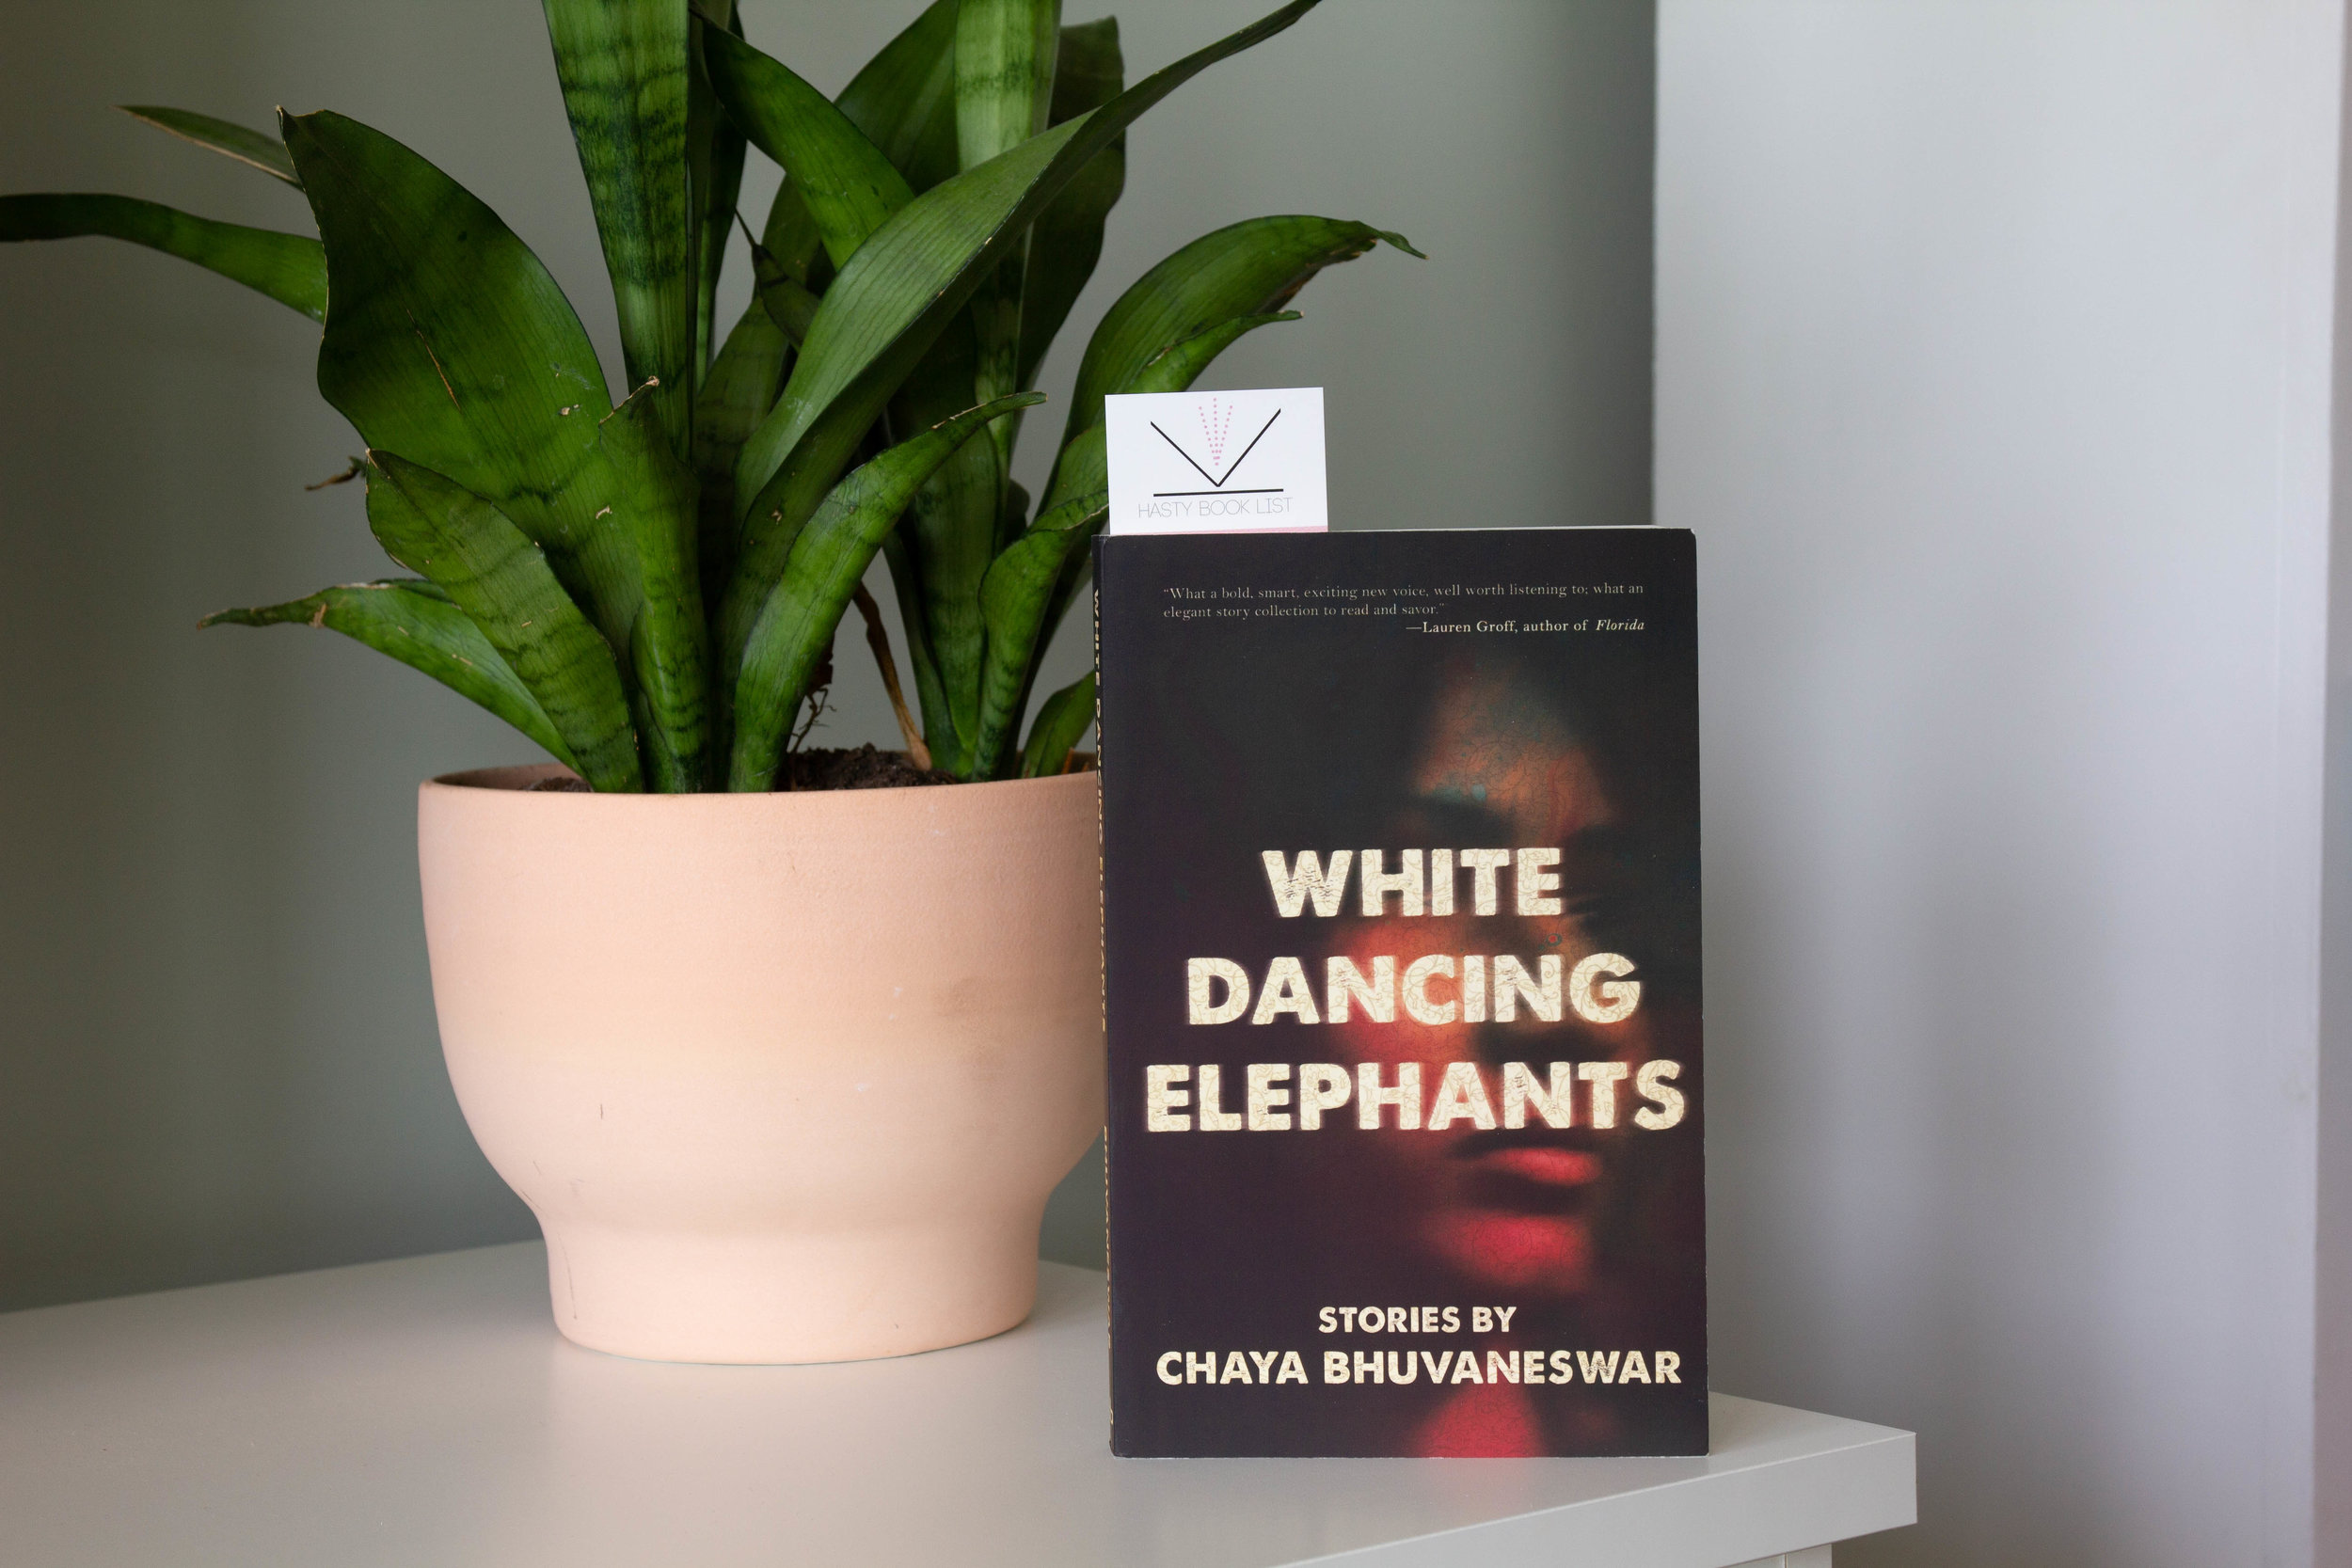 White Dancing Elephants by Chaya Bhuvaneswar - In seventeen remarkable stories, Chaya Bhuvaneswar spotlights diverse women of color—cunning, bold, and resolute—facing sexual harassment and racial violence, and occasionally inflicting that violence on each other.